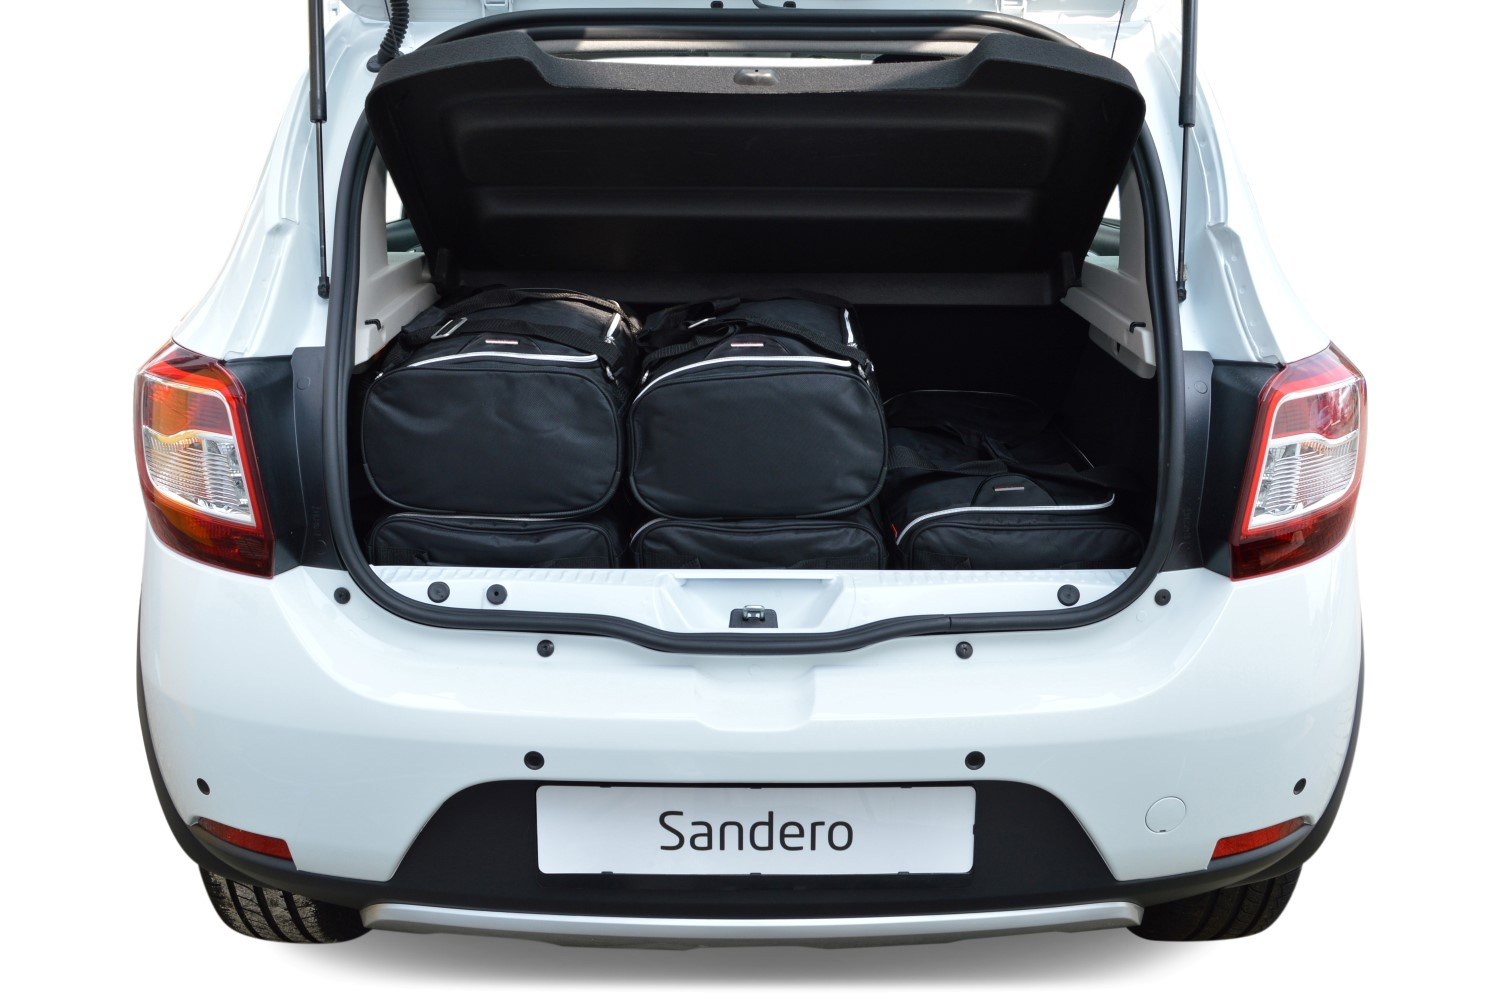 sandero dacia sandero 2012 heute 5t car bags reisetaschen. Black Bedroom Furniture Sets. Home Design Ideas